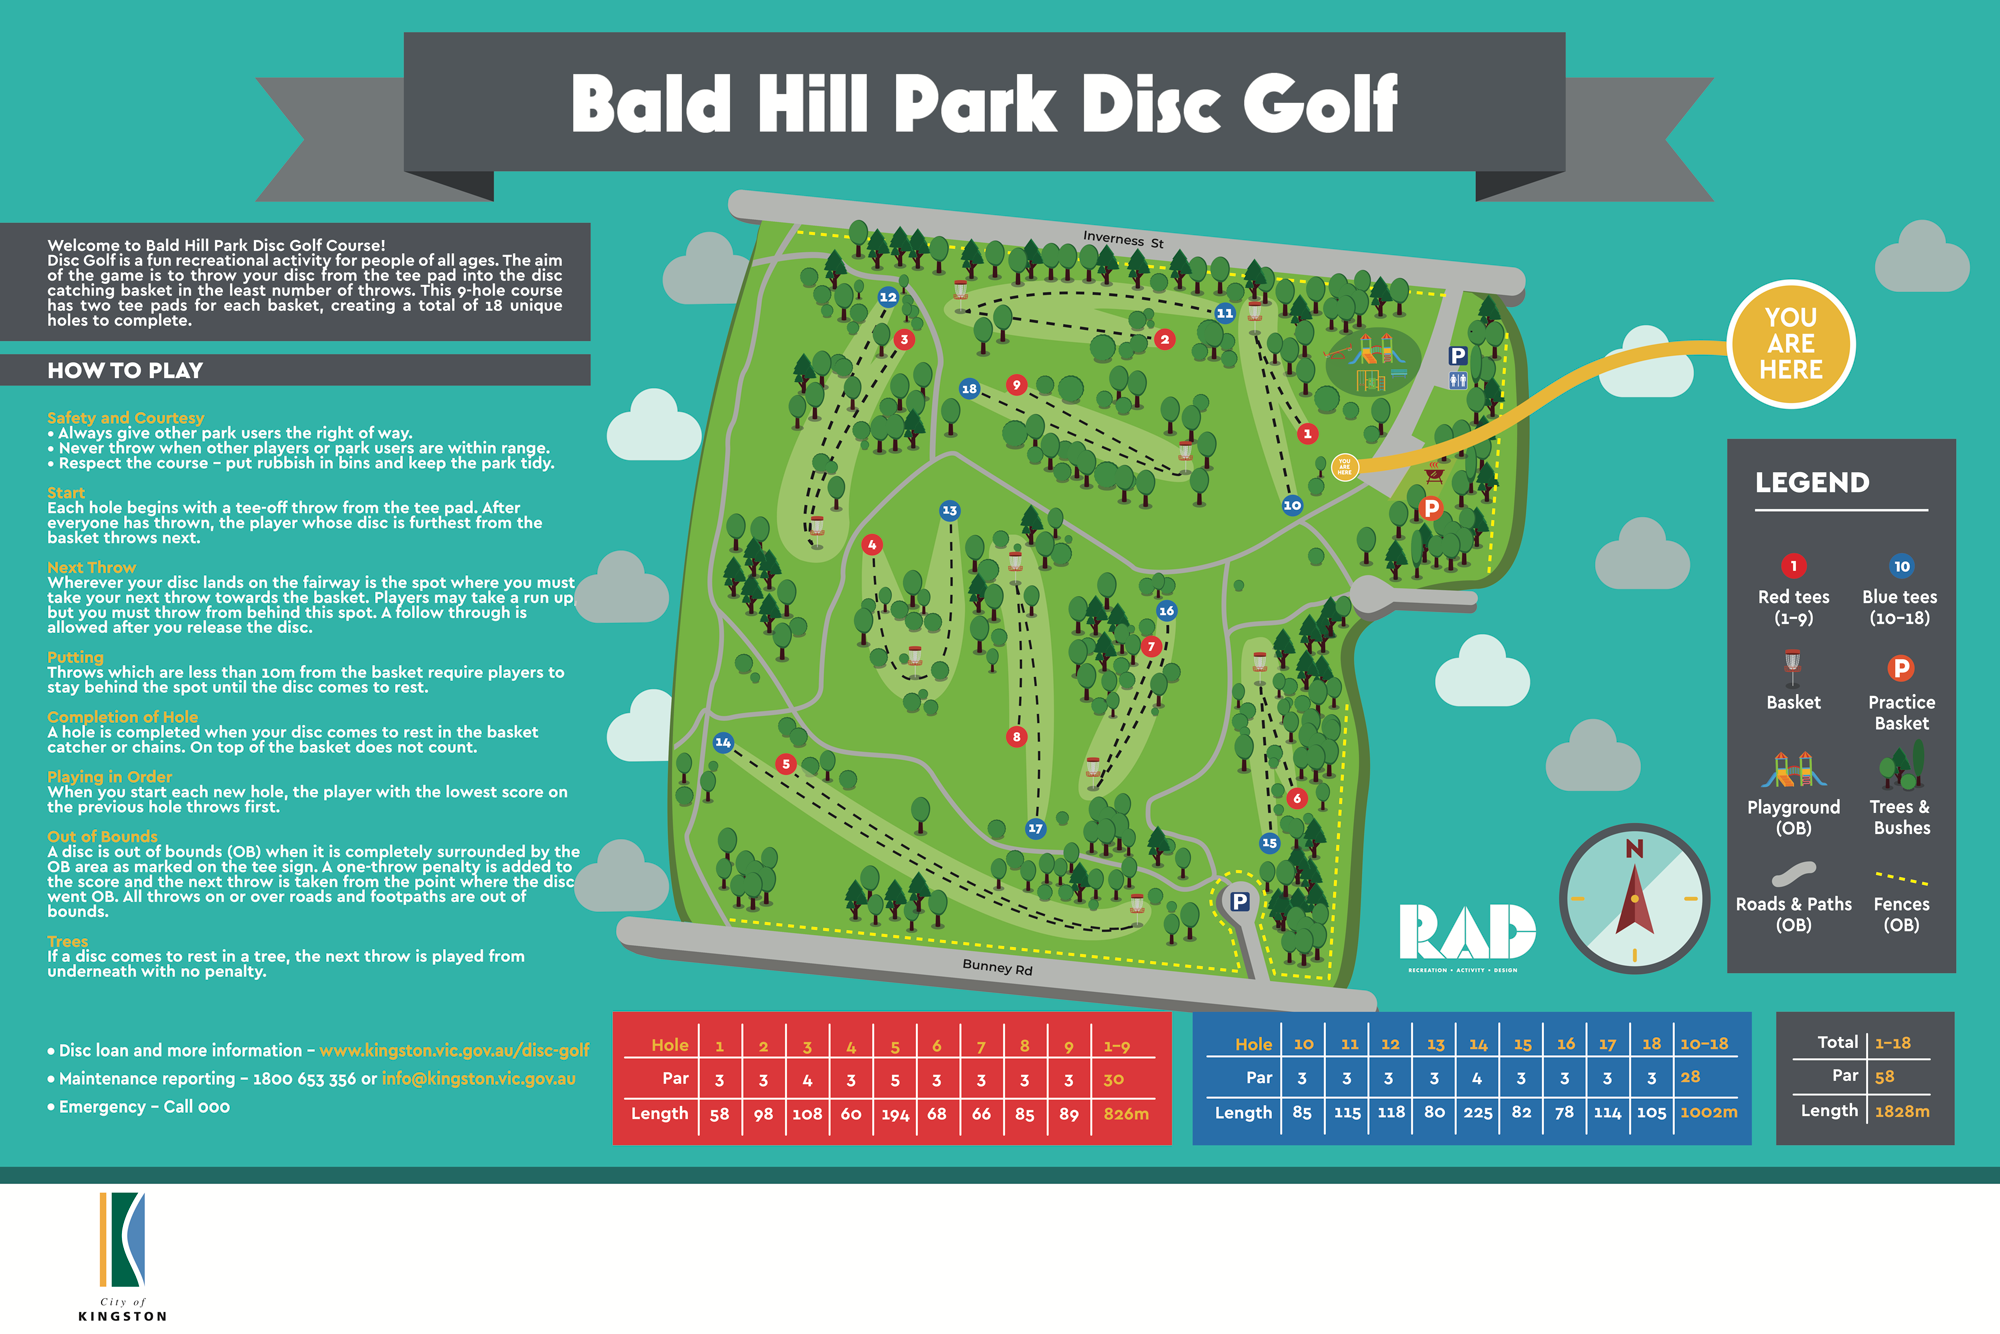 image of Bald Hill Park Disc Golf map